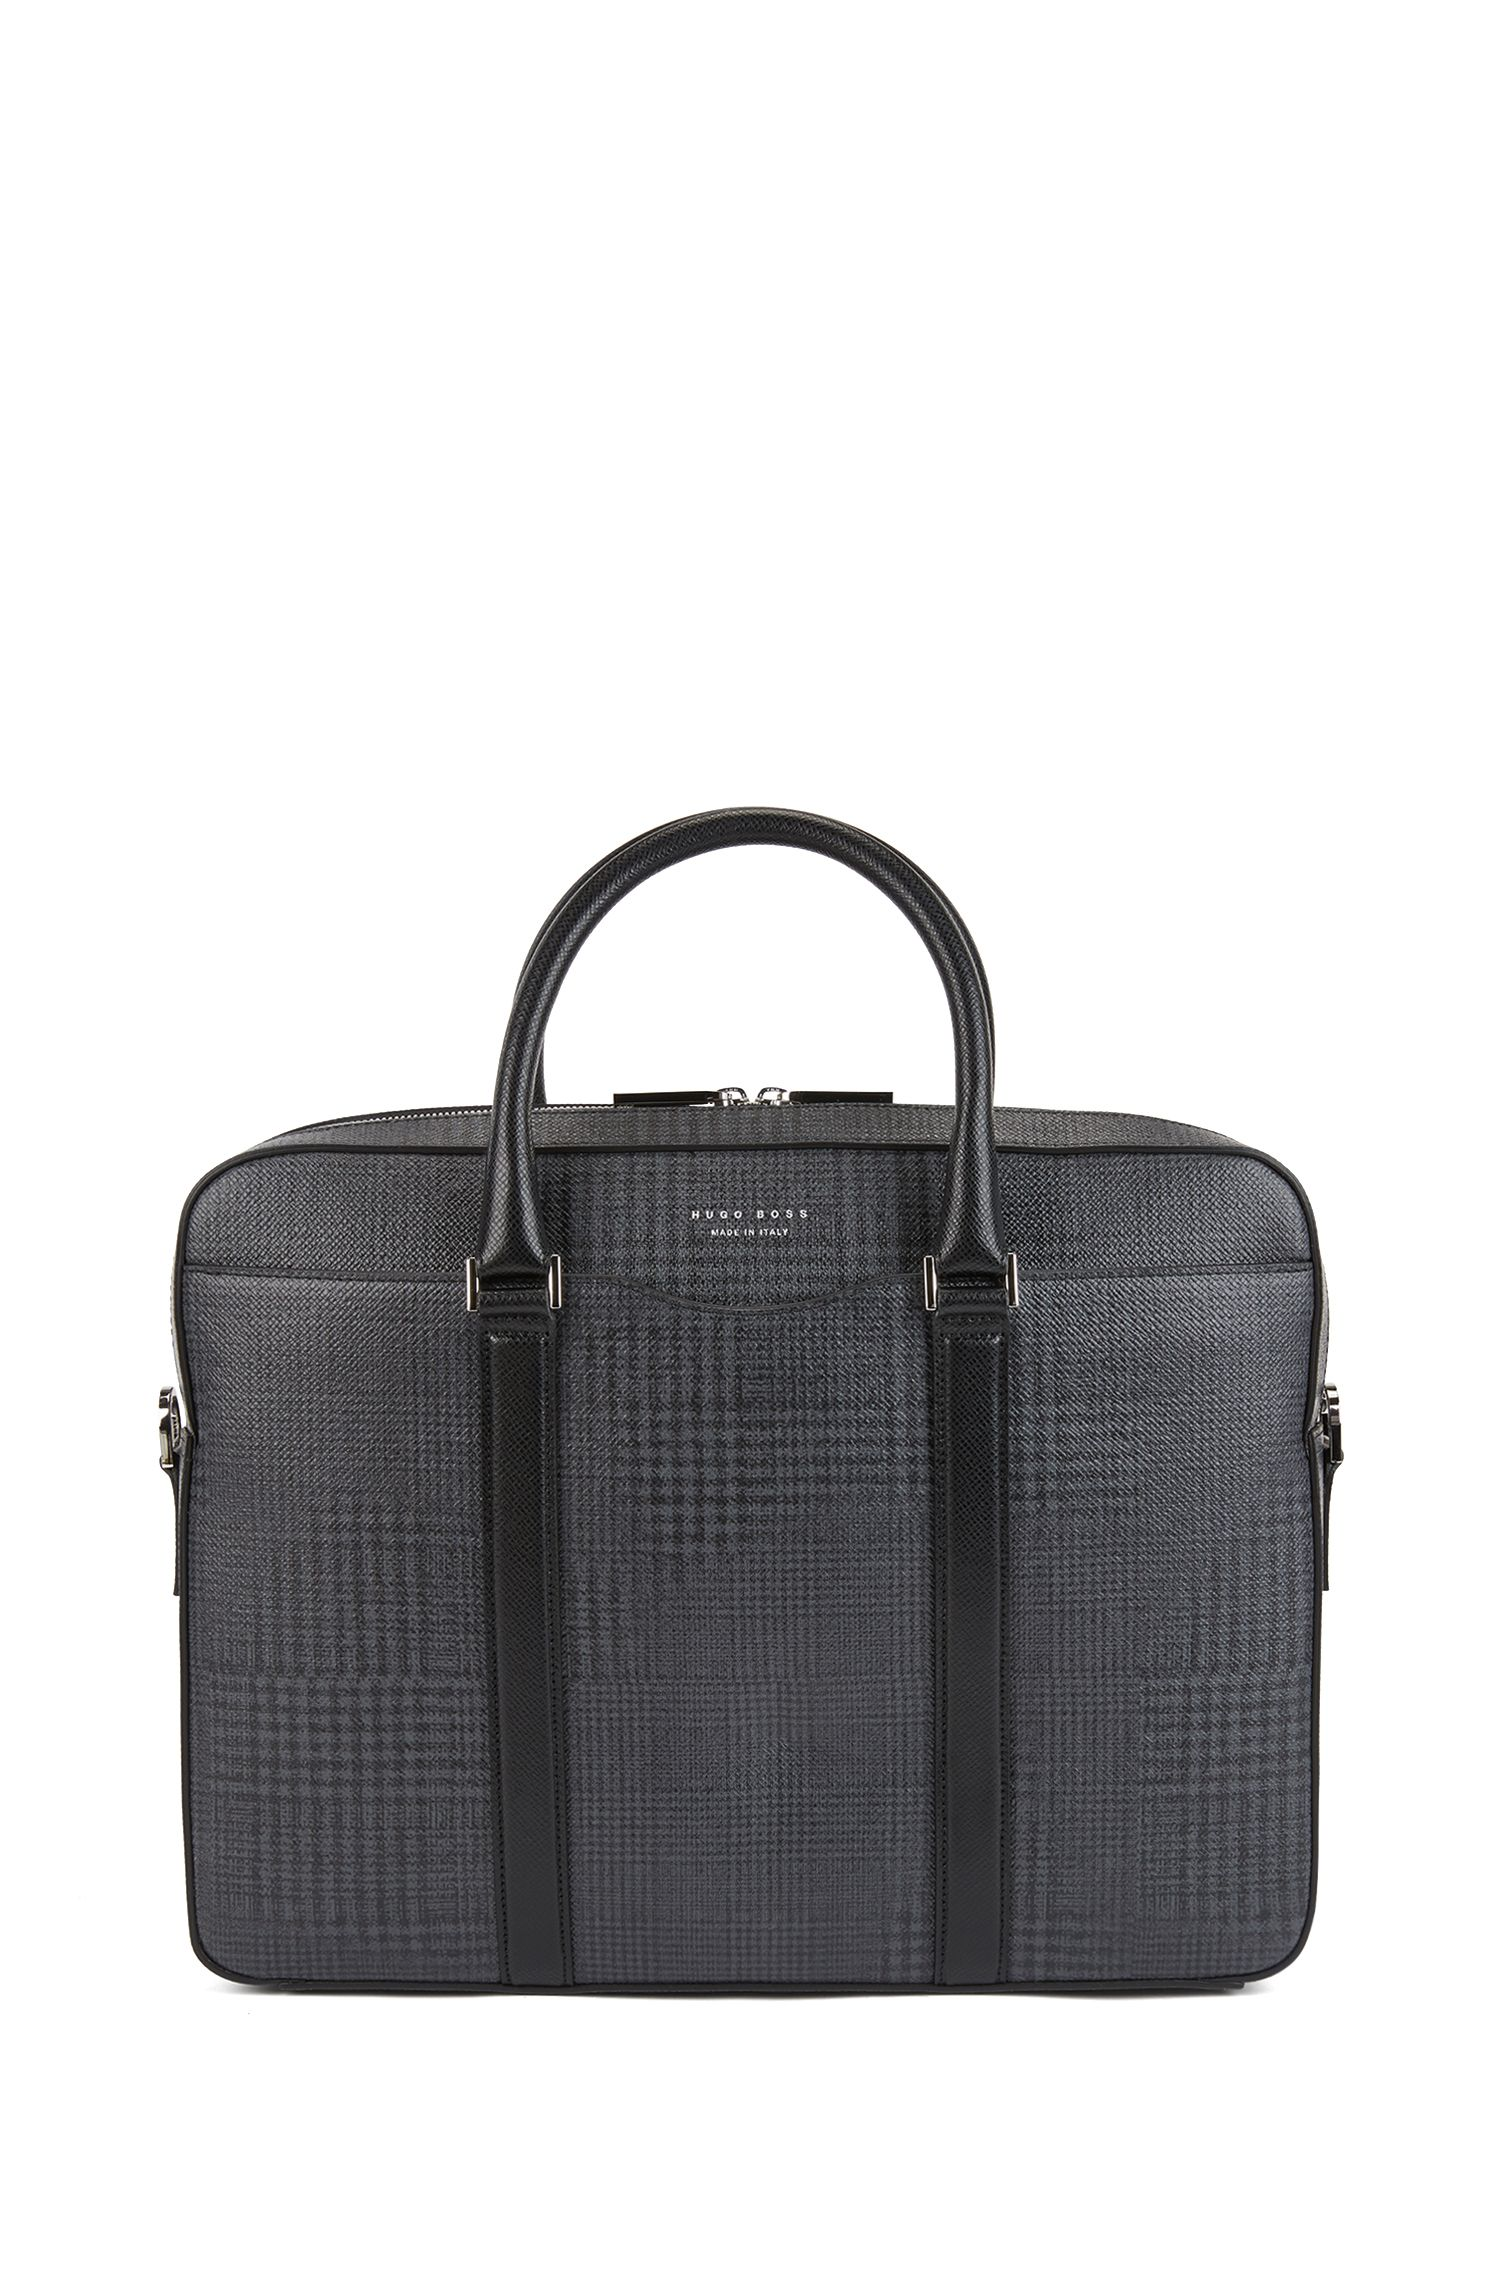 Signature Collection document case in check-printed calf leather, Patterned